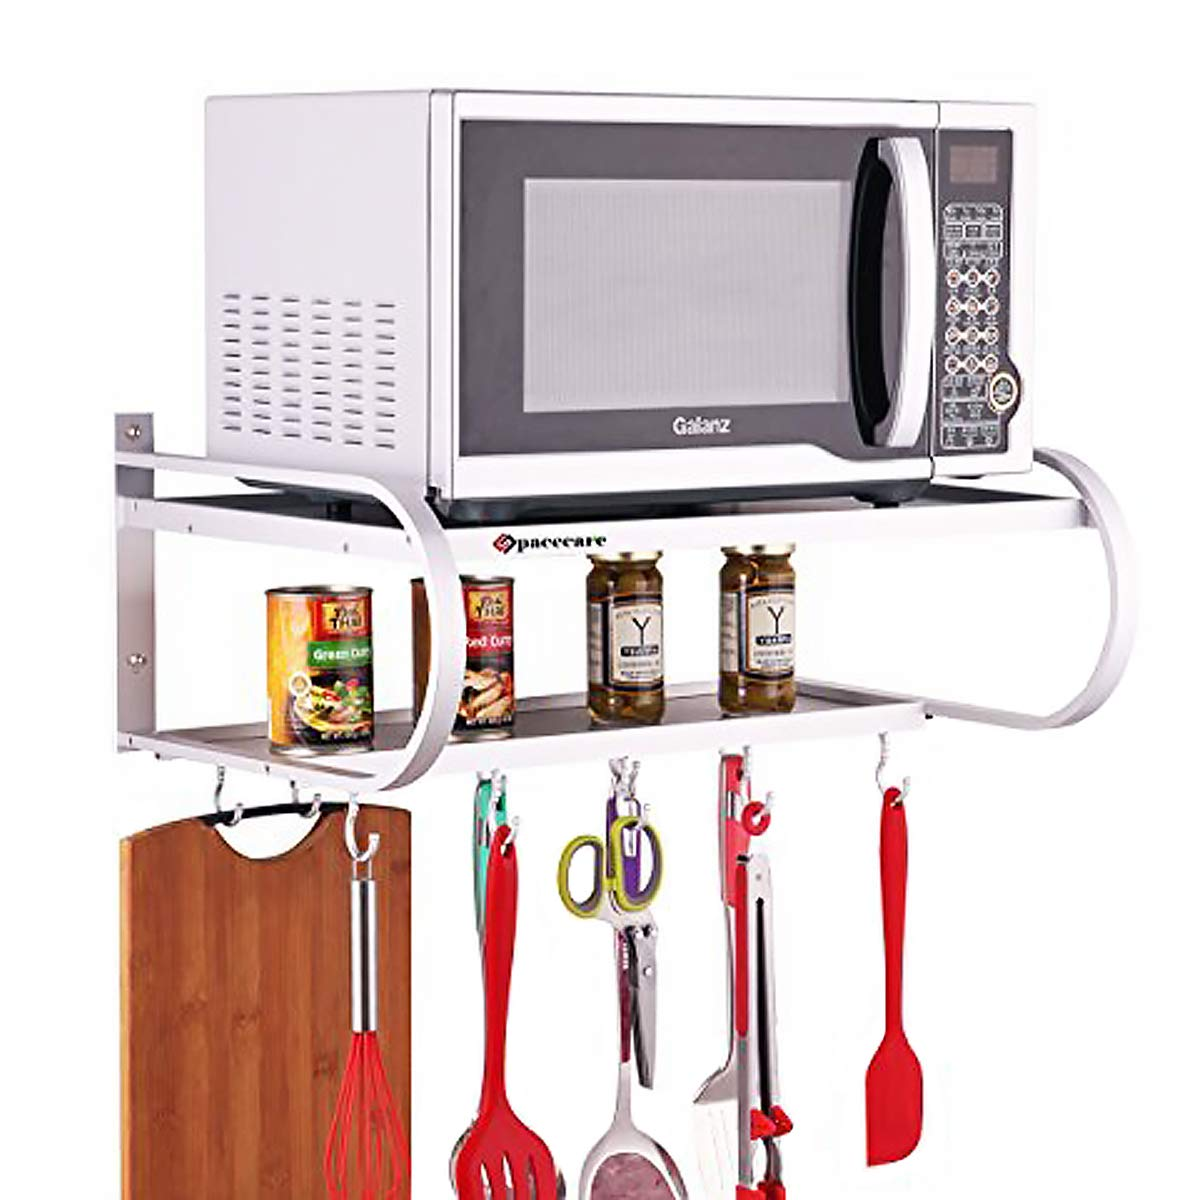 SPACECARE Double Bracket Alumimum Microwave Oven Wall Mount Shelf With Removable Hook-MSHF003-1